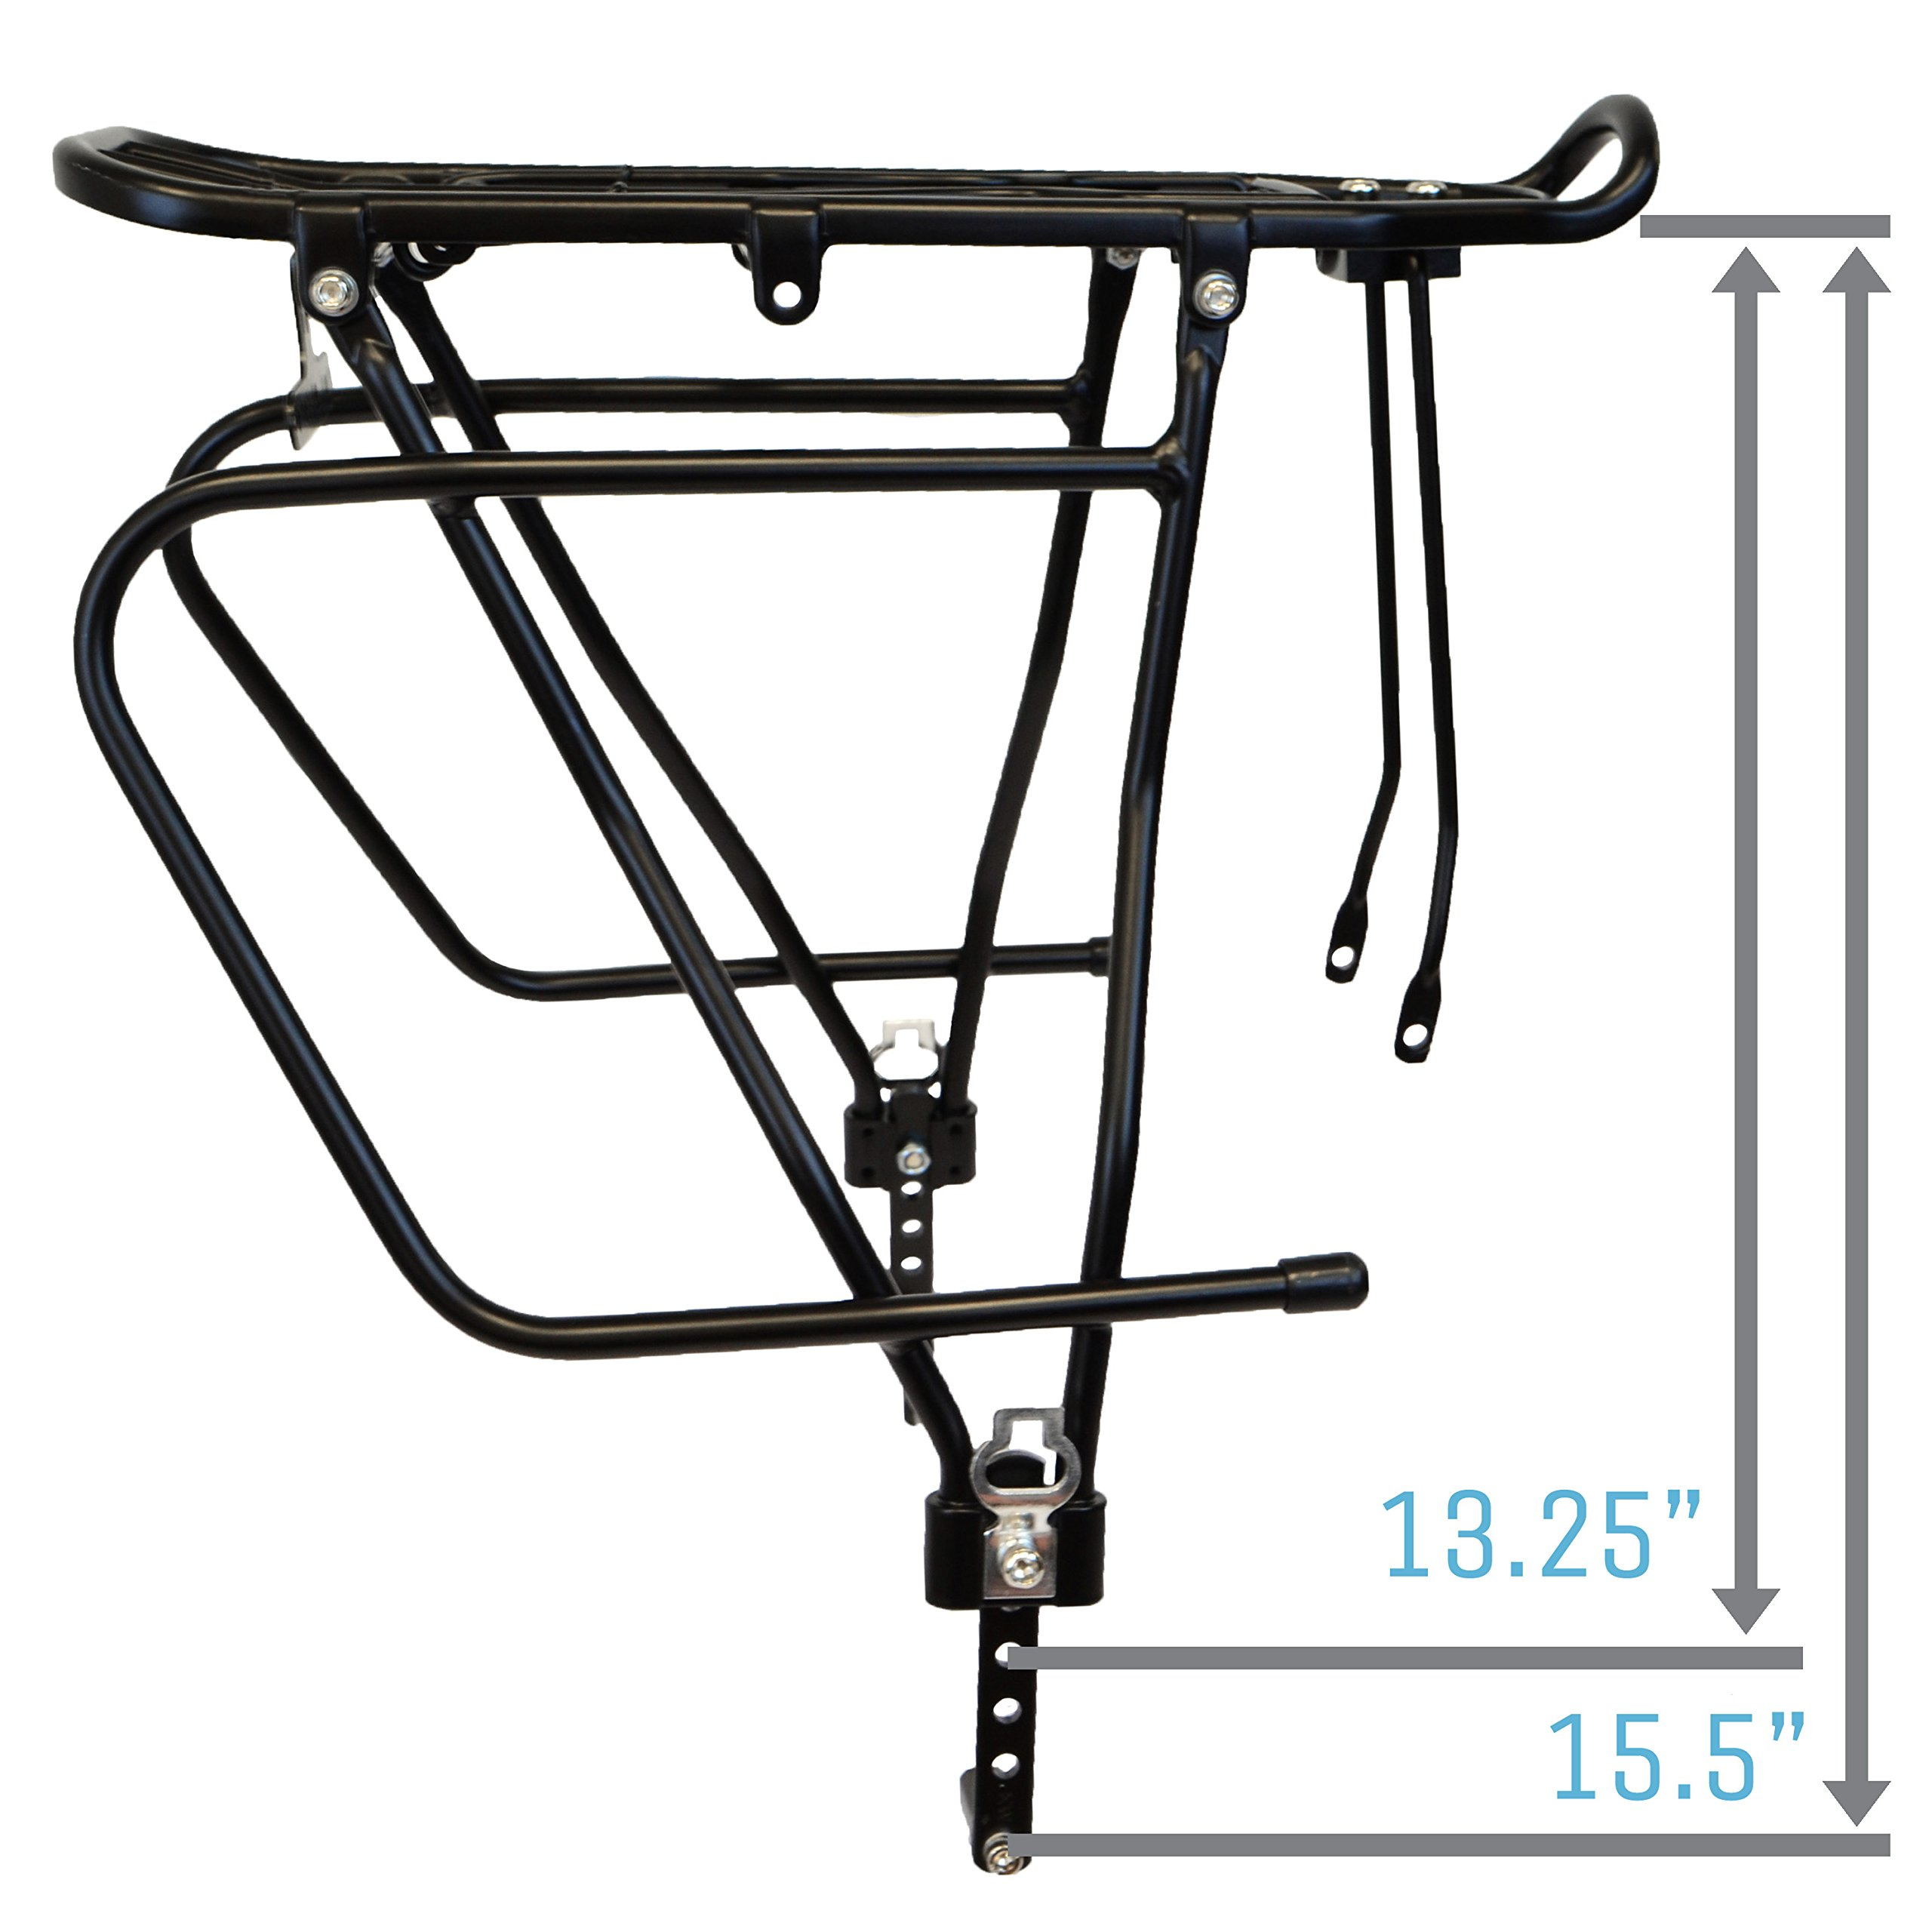 Lumintrail Bicycle Rear Frame Mounted Cargo Rack for Disc Bikes Height Adjustable Commuter Carrier by Lumintrail (Image #9)